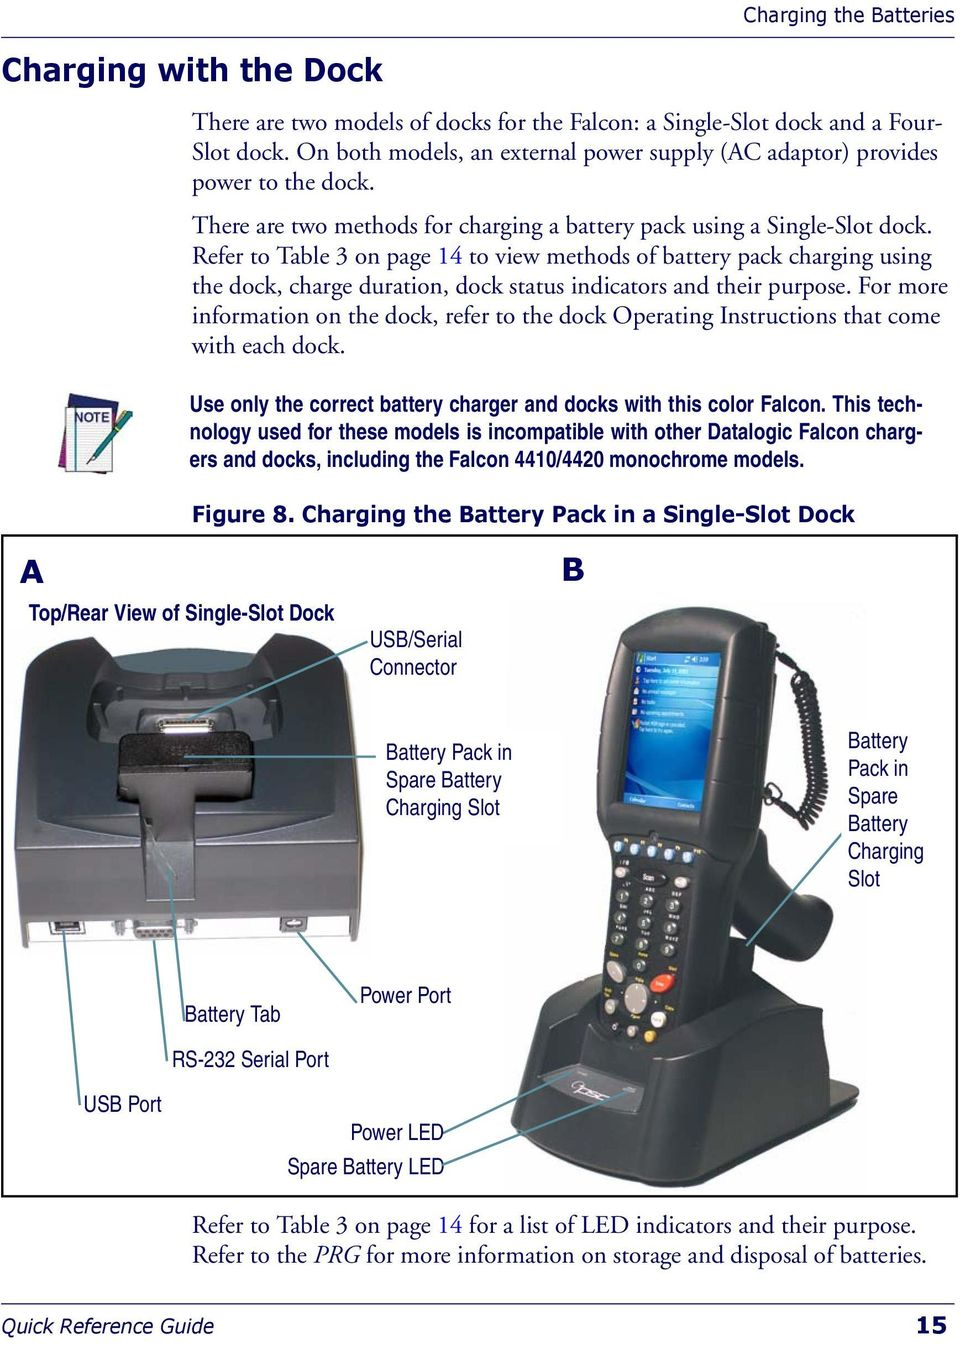 Refer to Table 3 on page 14 to view methods of battery pack charging using the dock, charge duration, dock status indicators and their purpose.